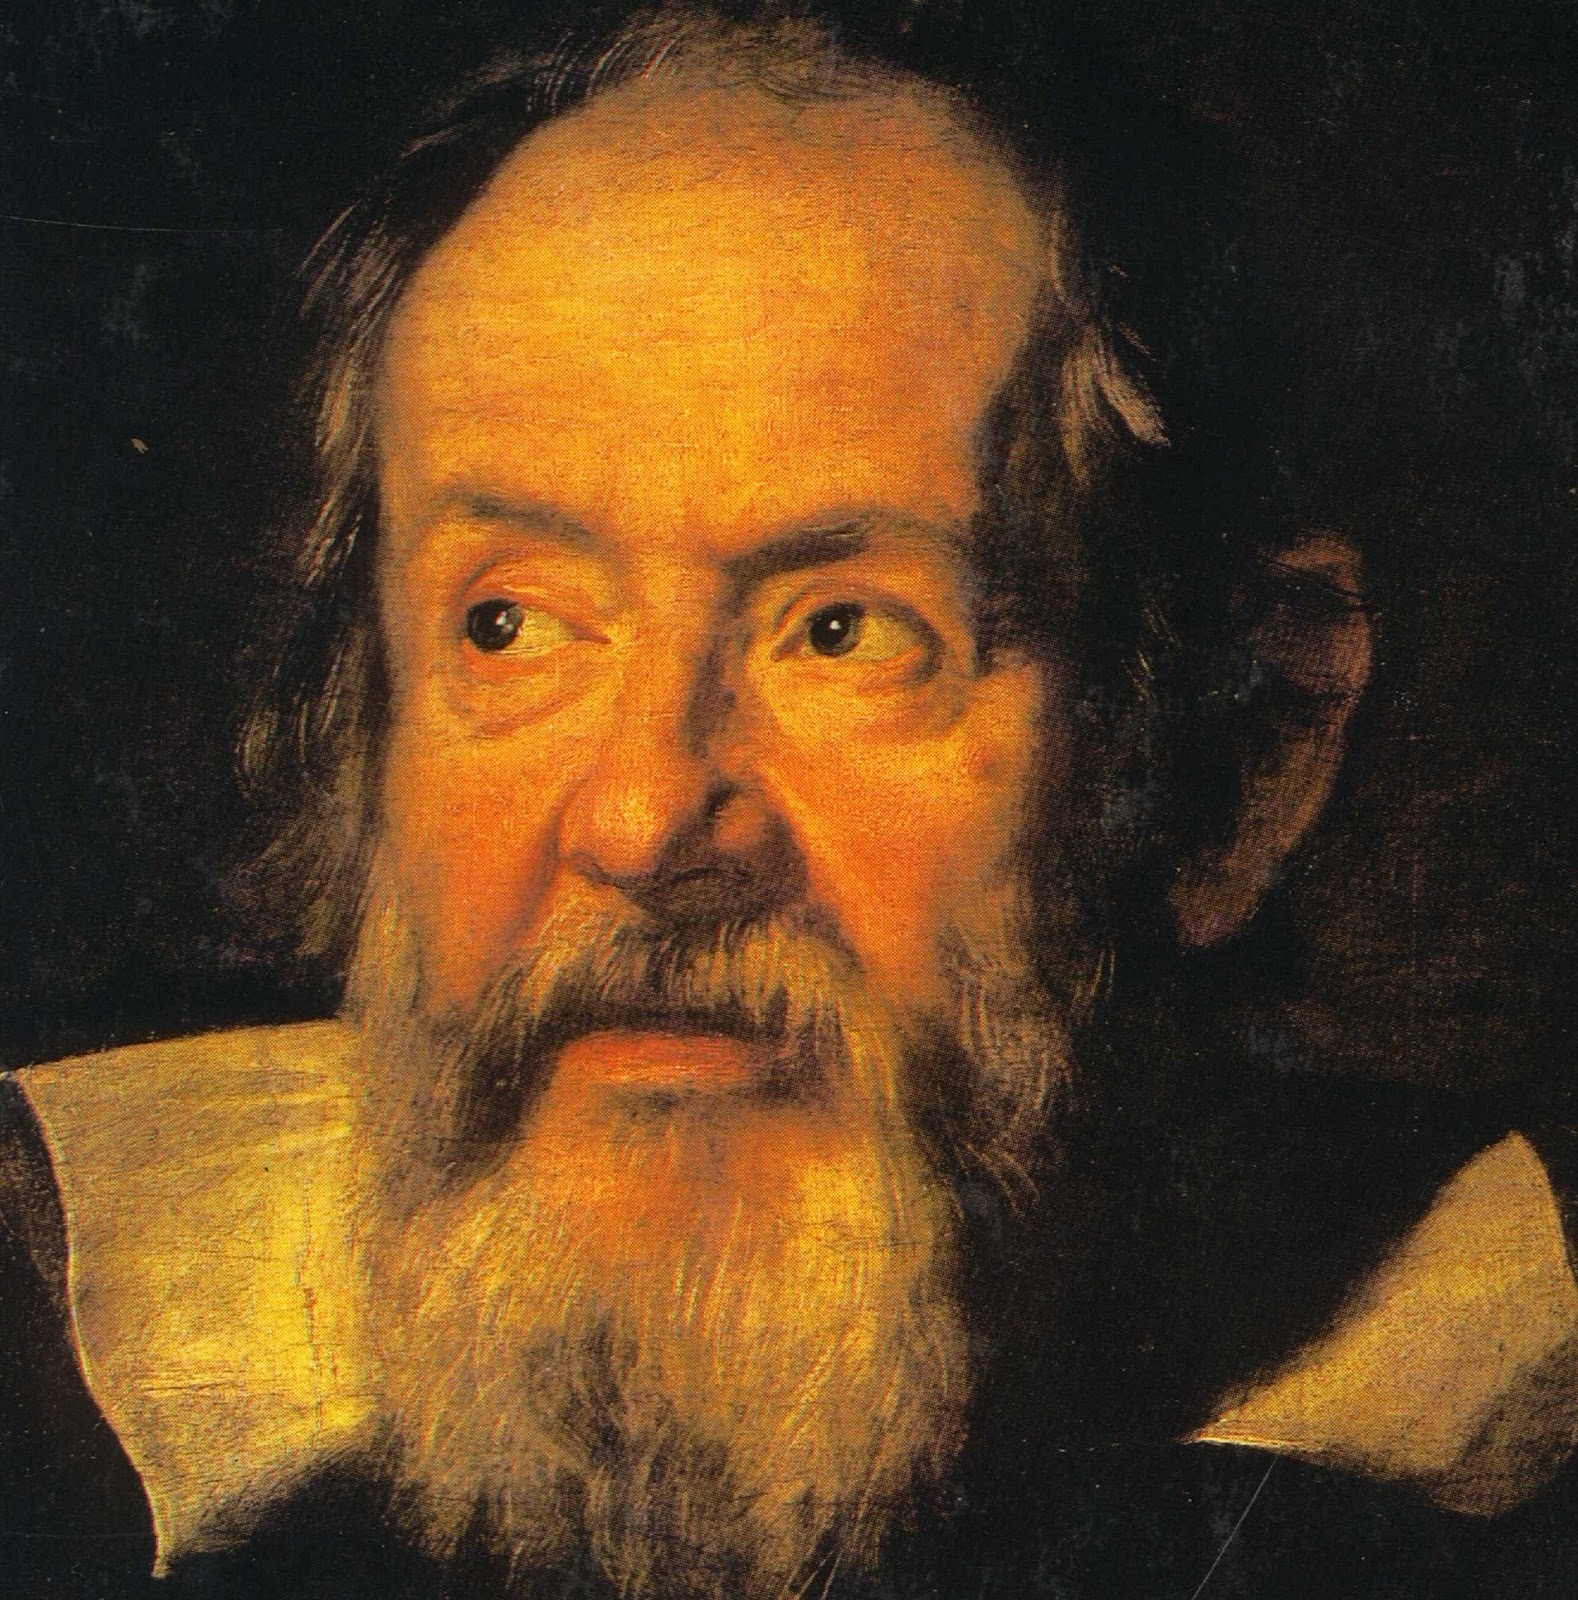 galileo galilei facts for kids